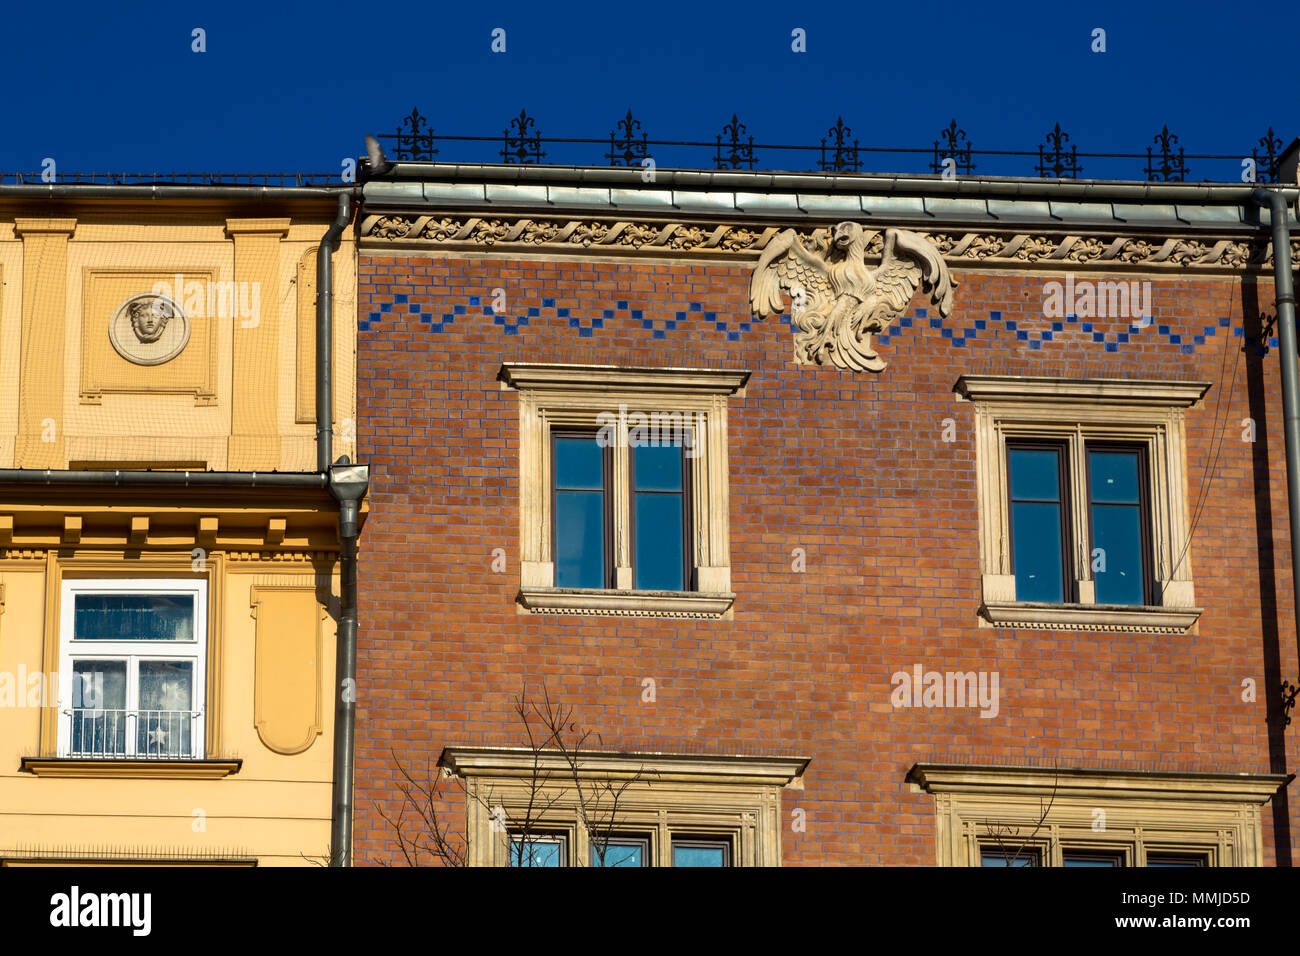 KRAKOW, POLAND - DECEMBER 16, 2016. Architecture detail in Krakow city center, Poland - Stock Image